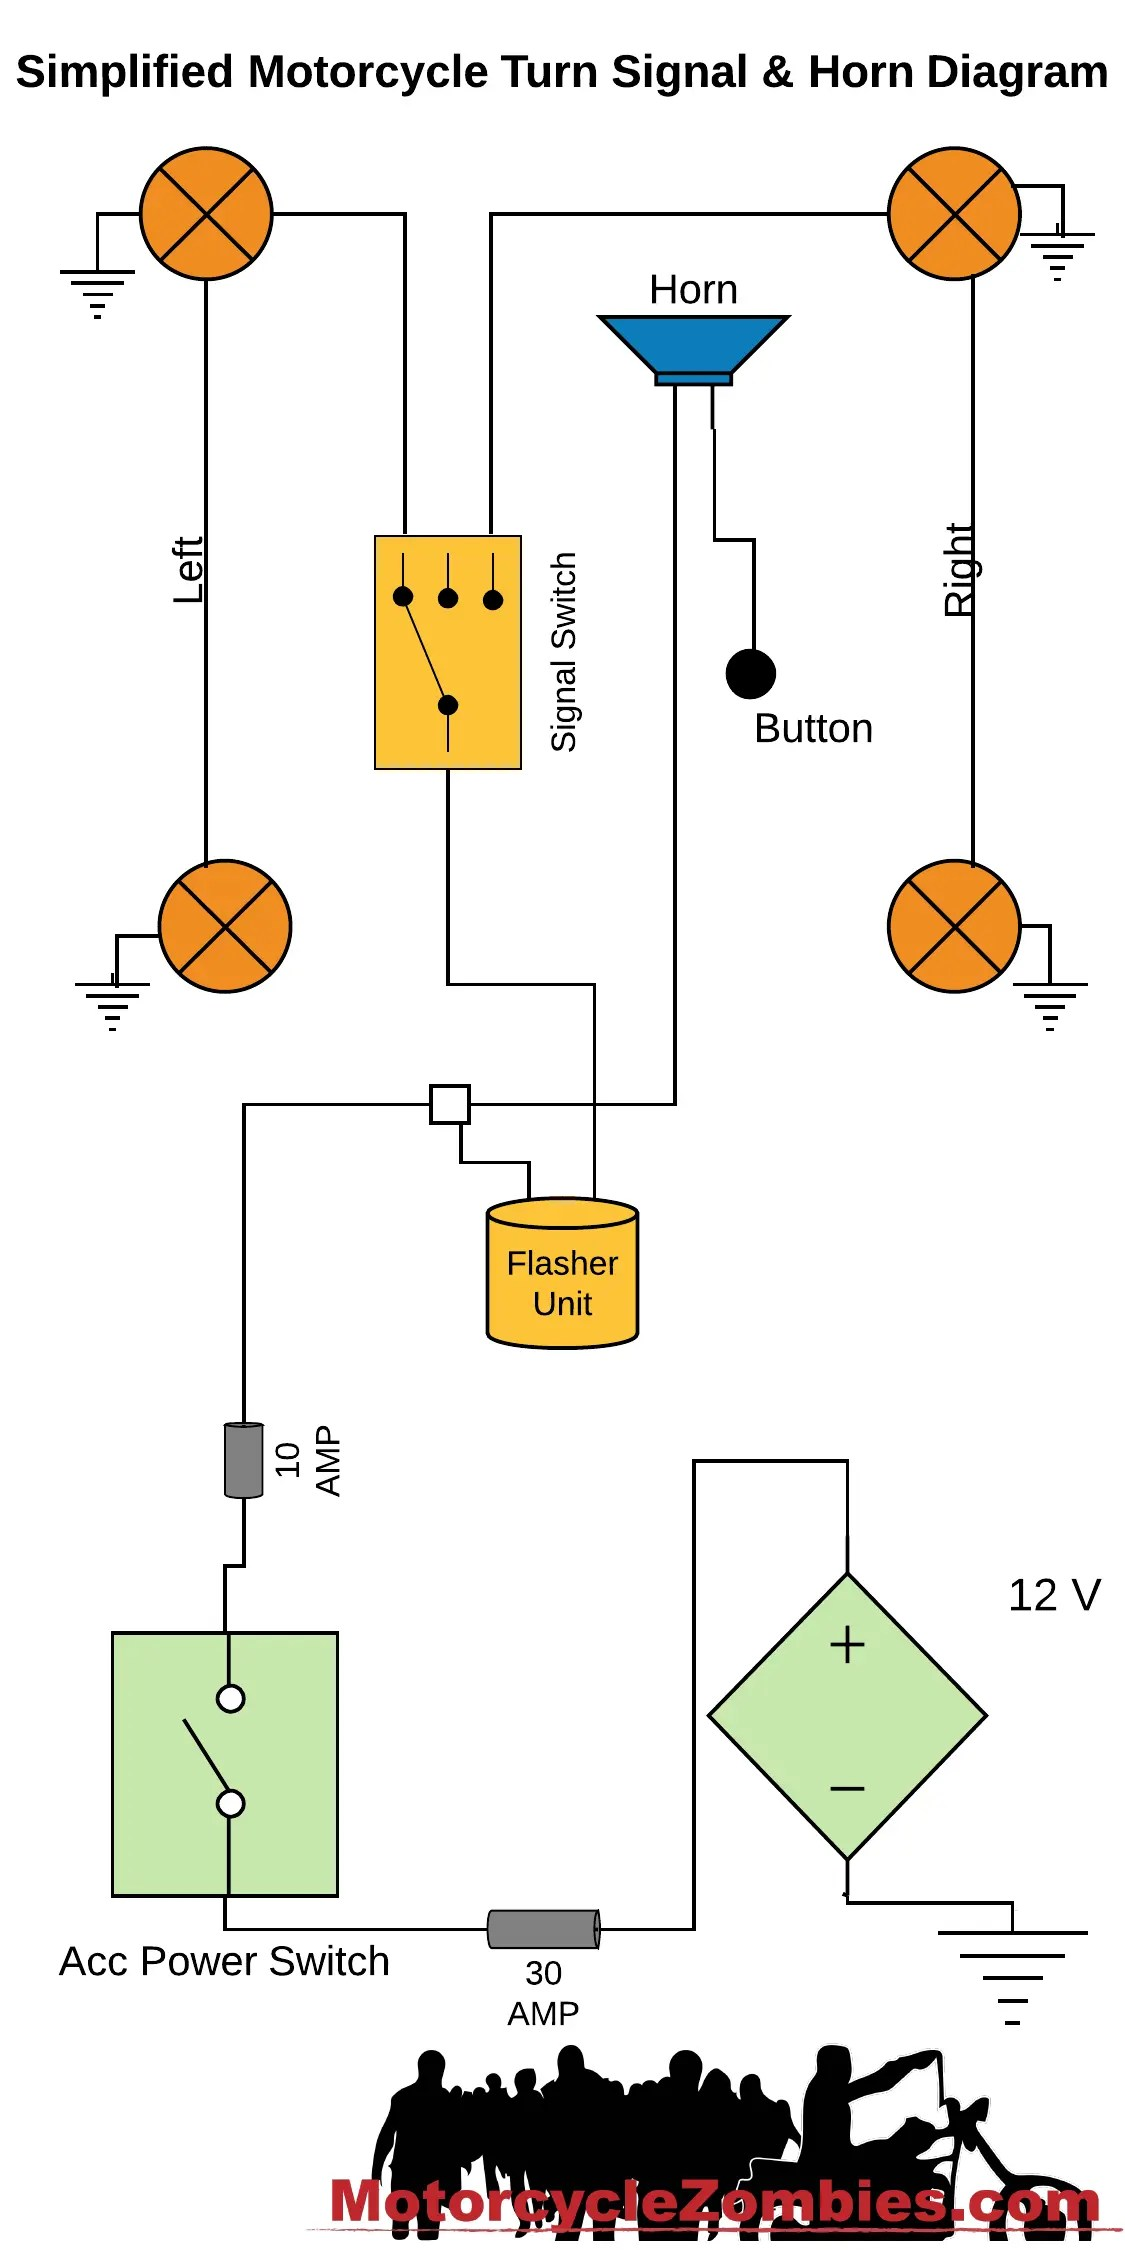 Turn Signal Wiring Diagram Wire Diagram Images Of Turn Signal Wiring